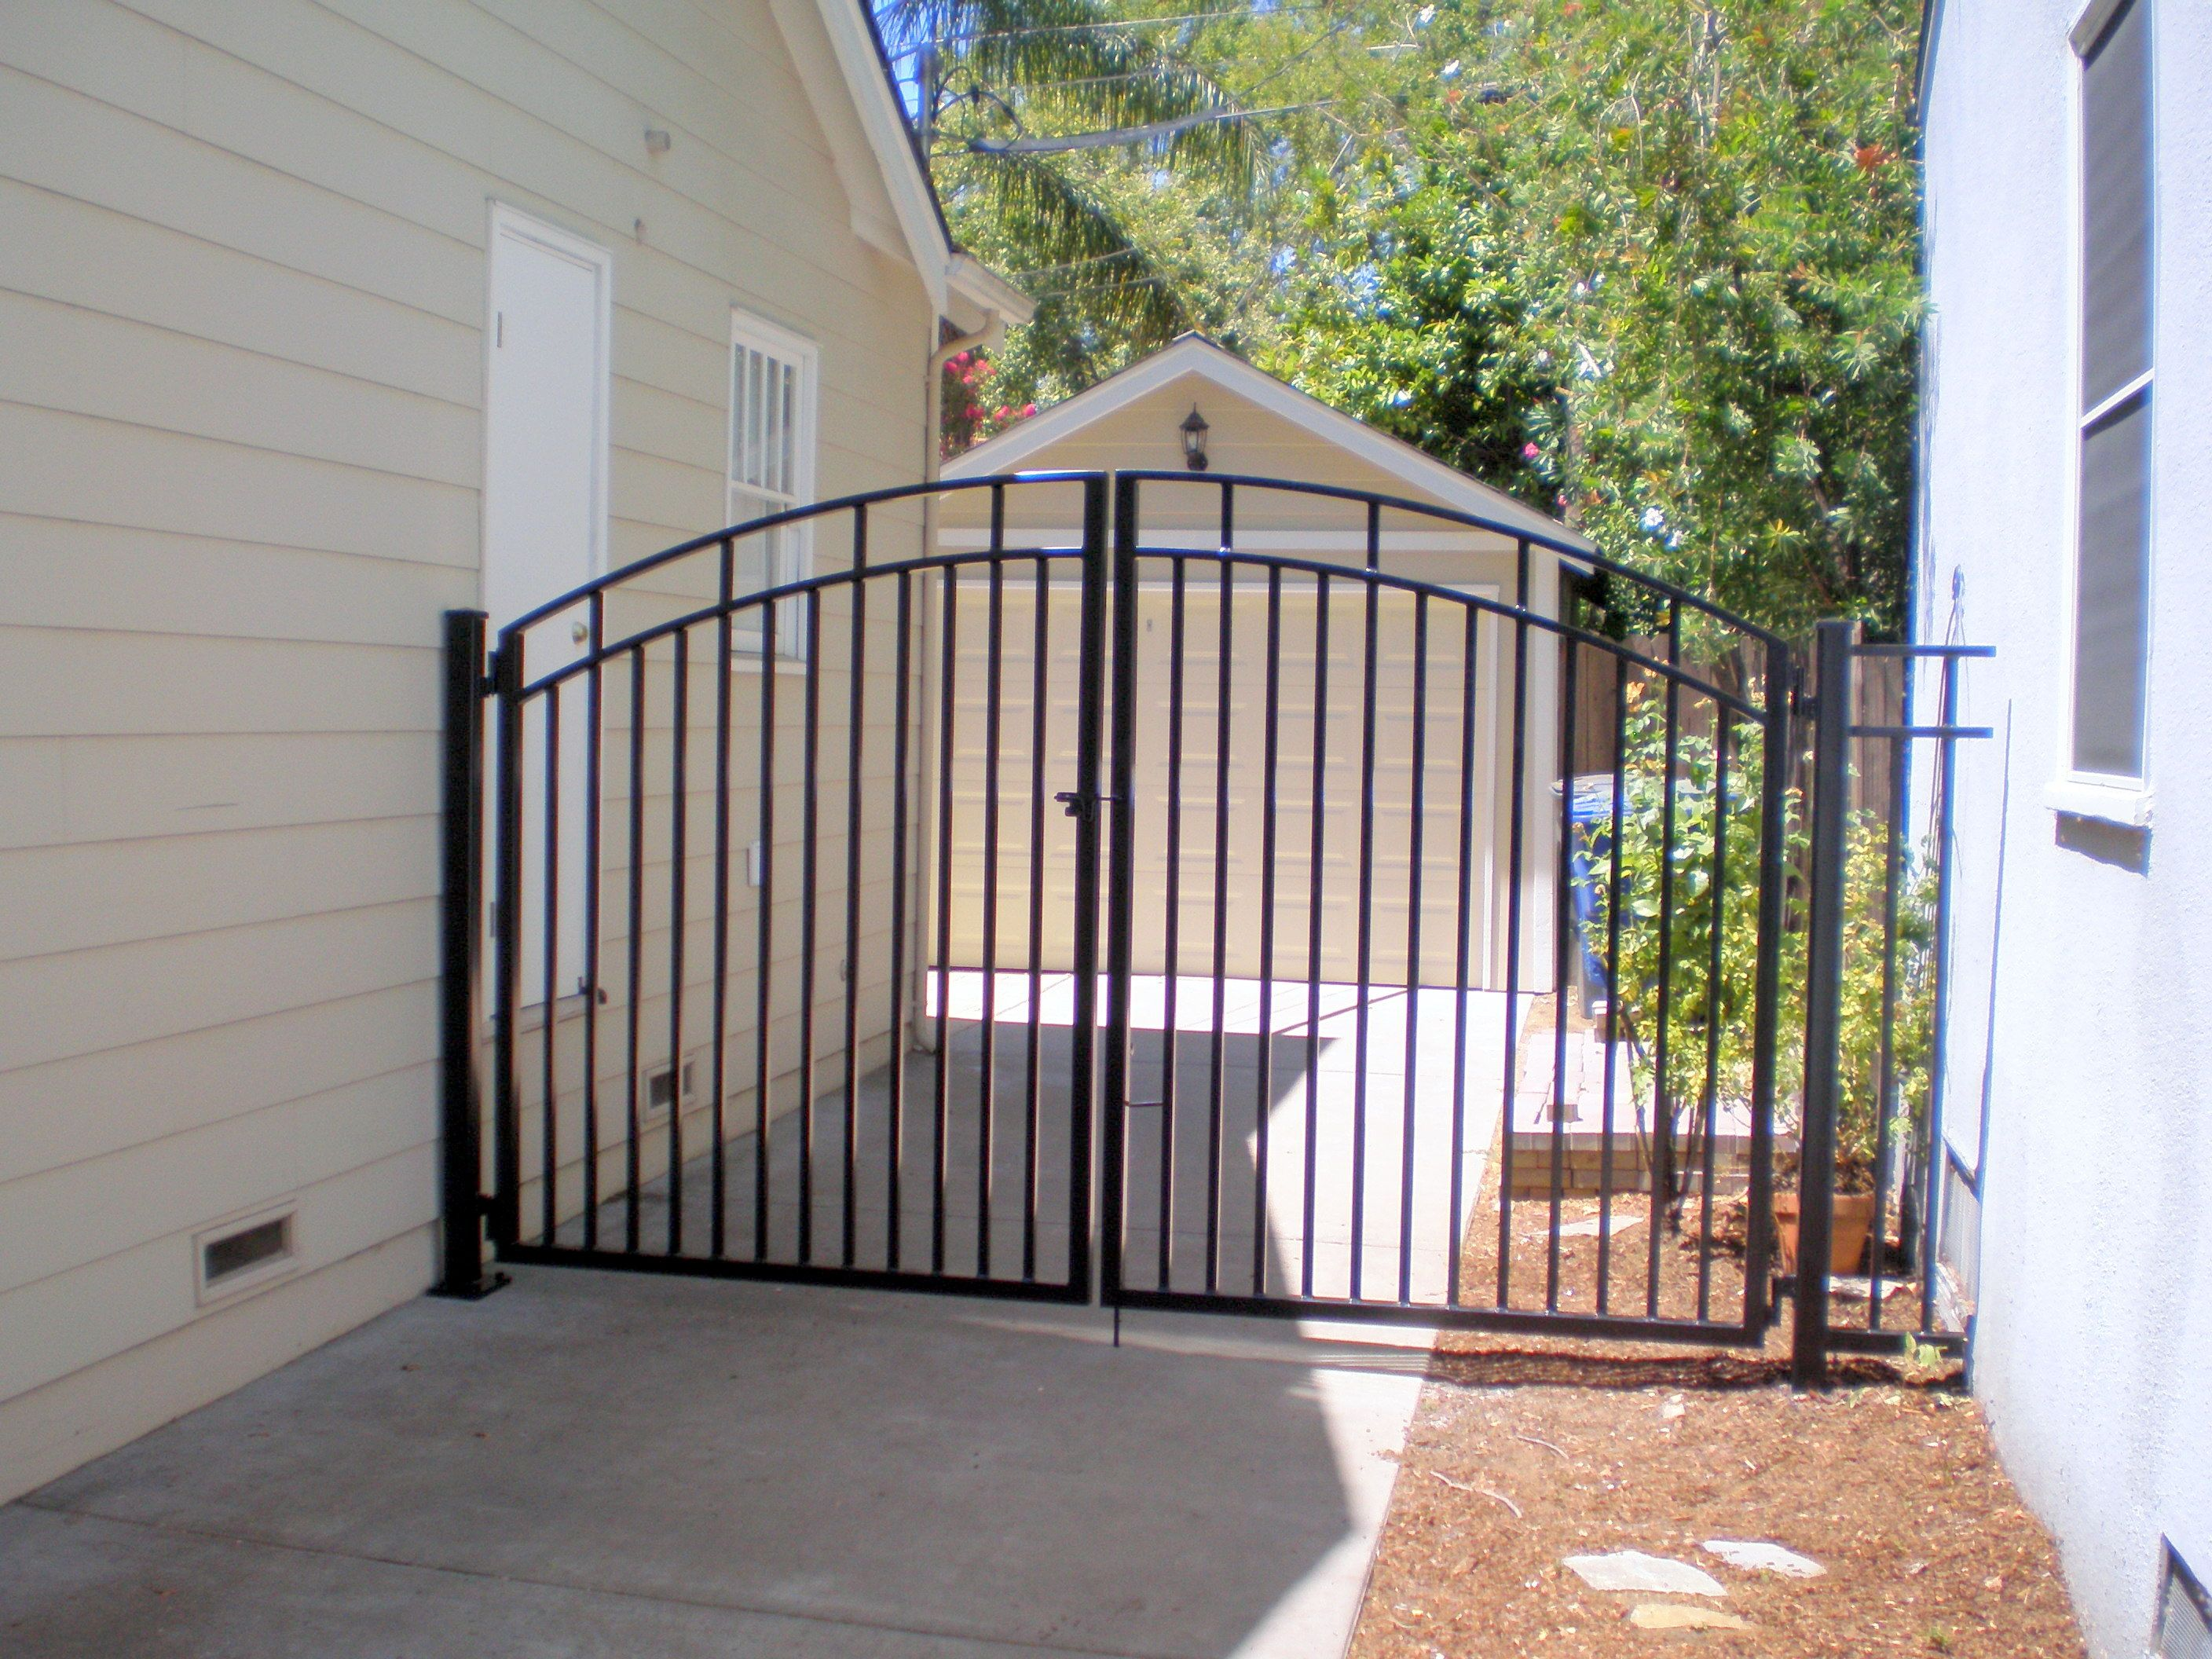 Metal Gate Designs Wrought Iron Classic Iron Driveway Gate Home Ideas Pinterest Metal